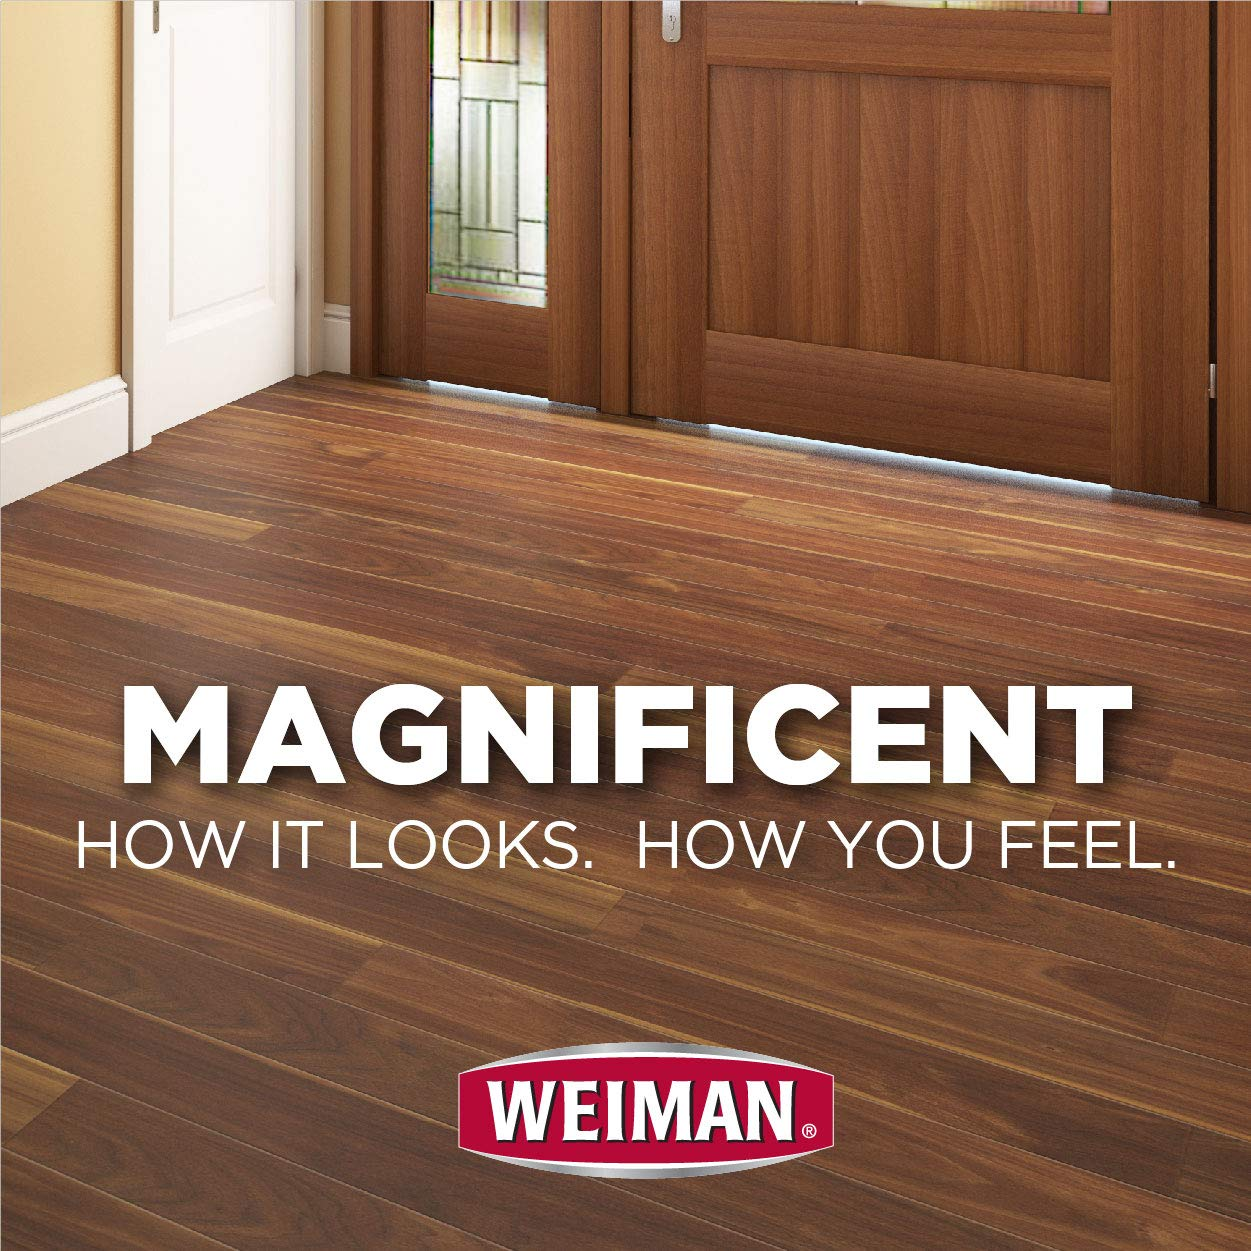 Weiman Wood Floor Cleaner [2 Pack] 32 Ounce - Hardwood Finished Oak Maple Cherry Birch Engineered and More - Professional Safe Steak-less by Weiman (Image #3)